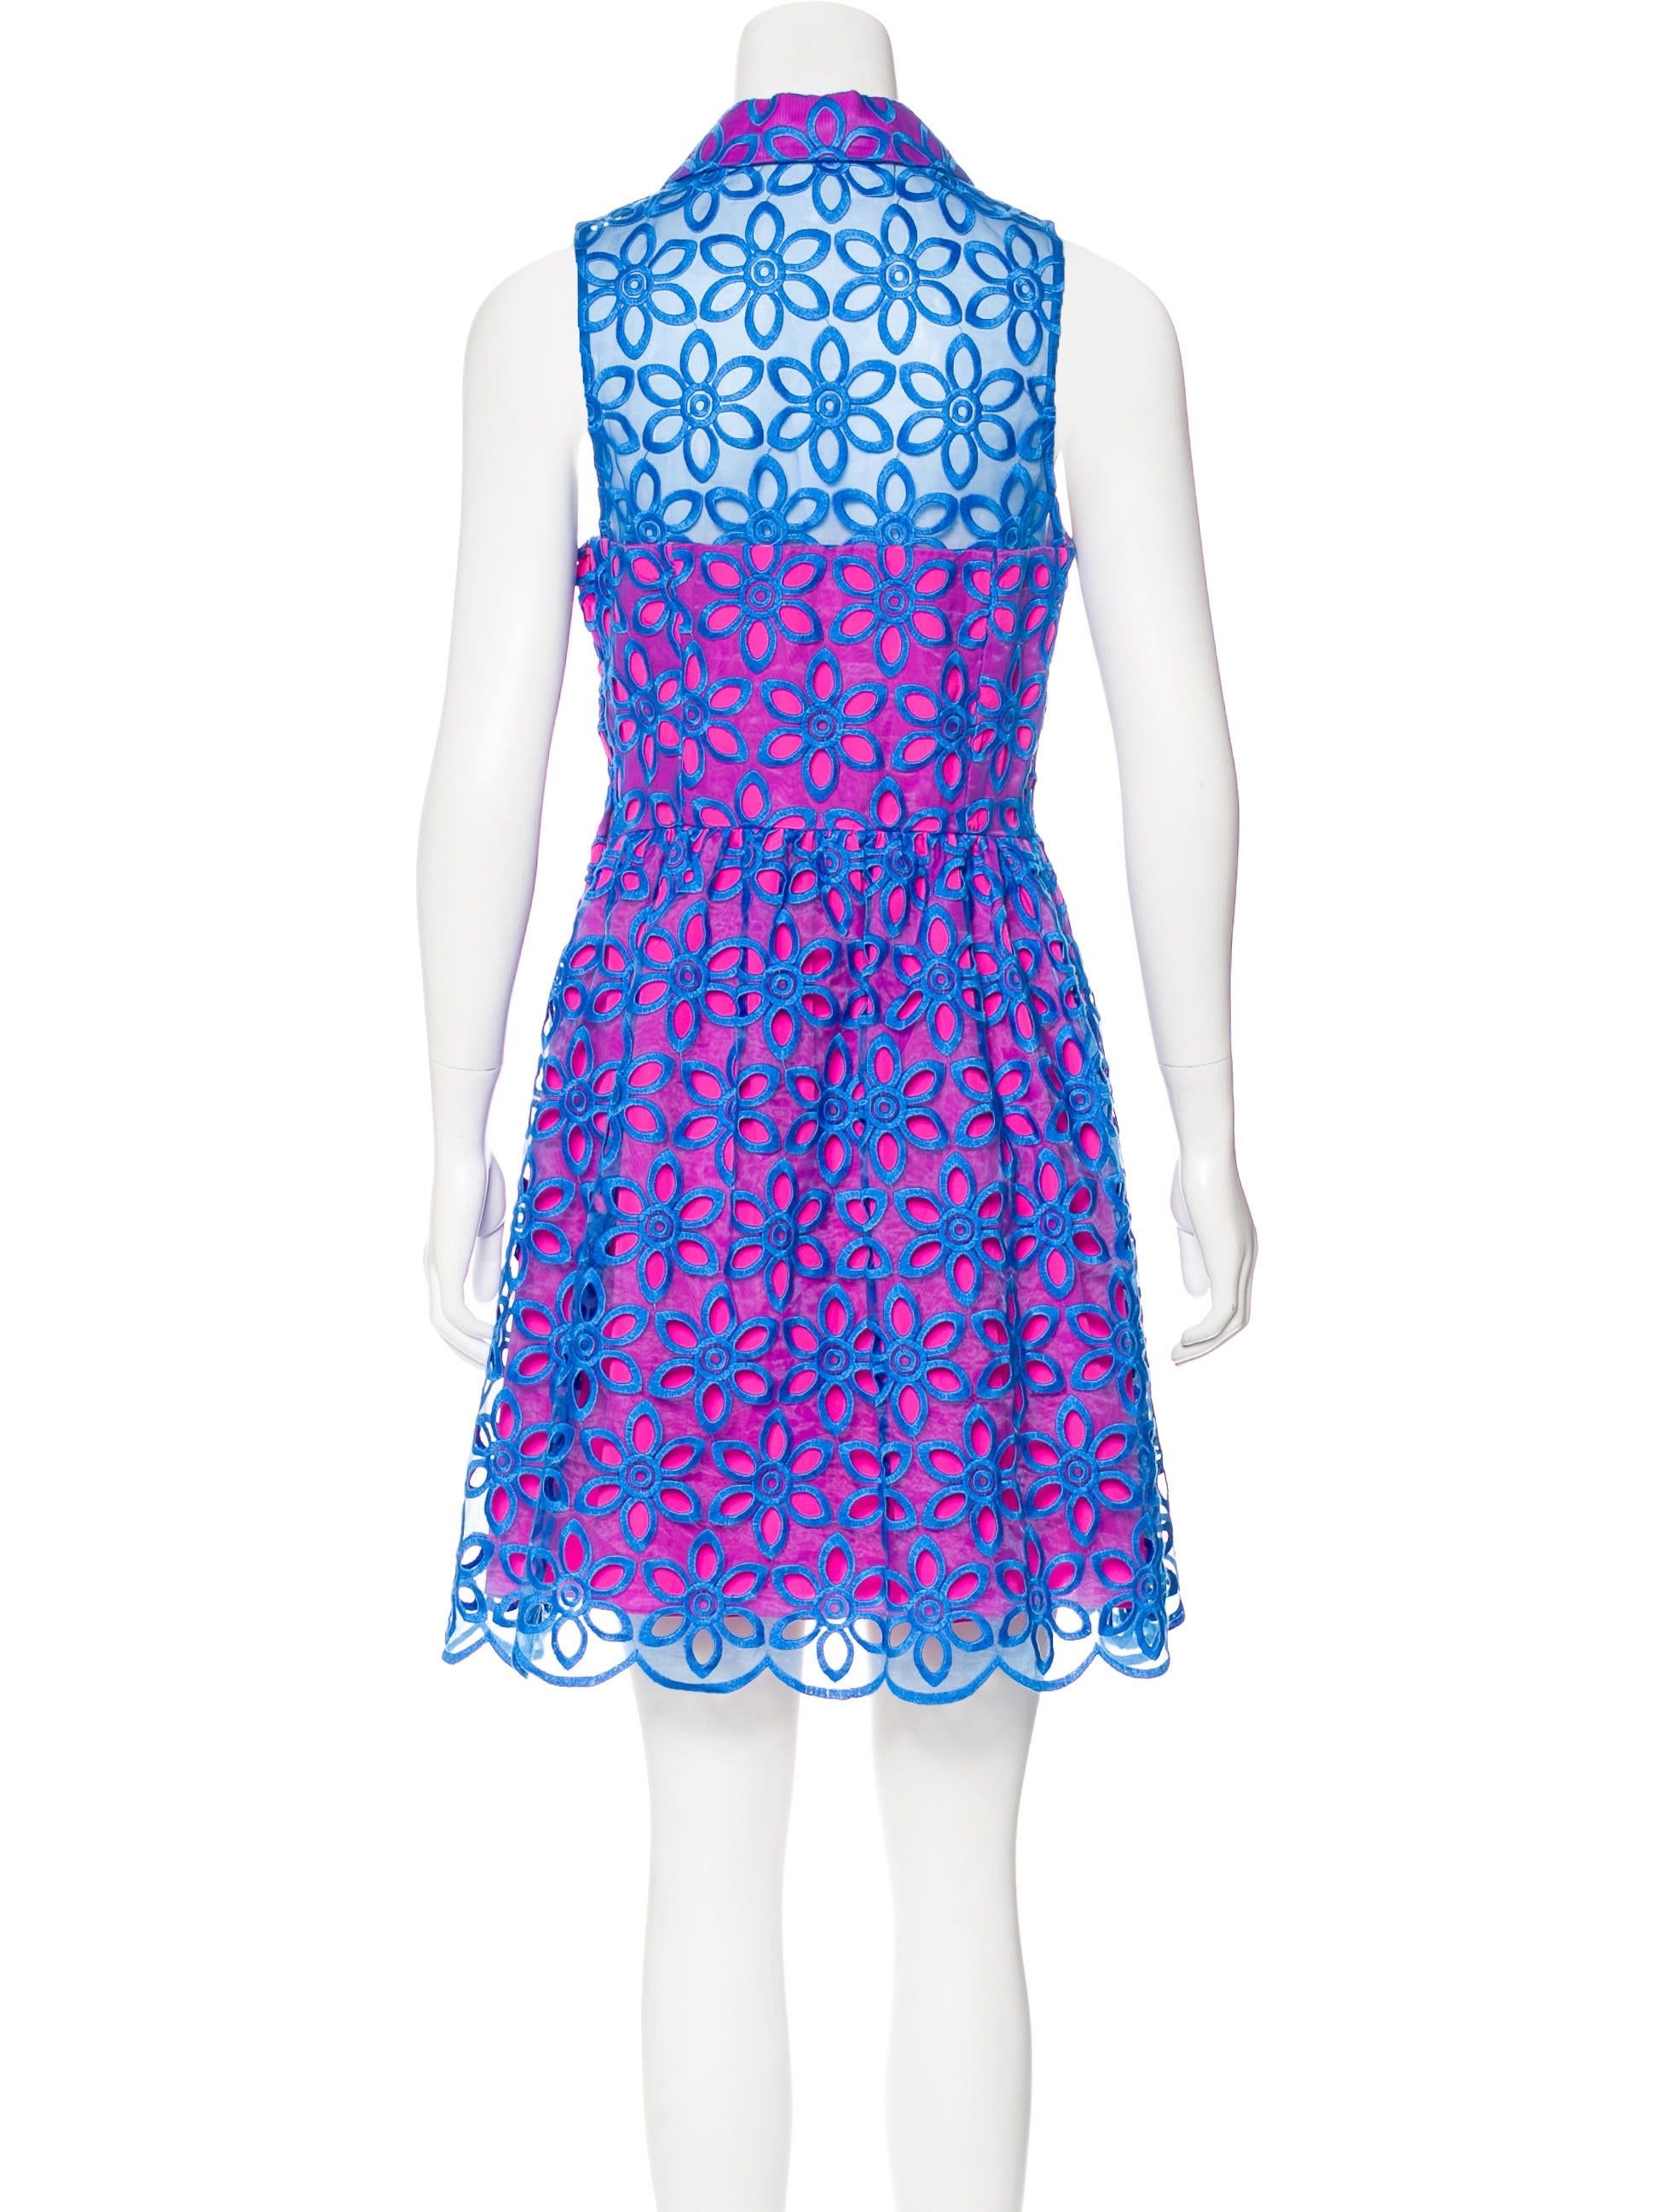 Lilly pulitzer floral embroidered mini dress clothing